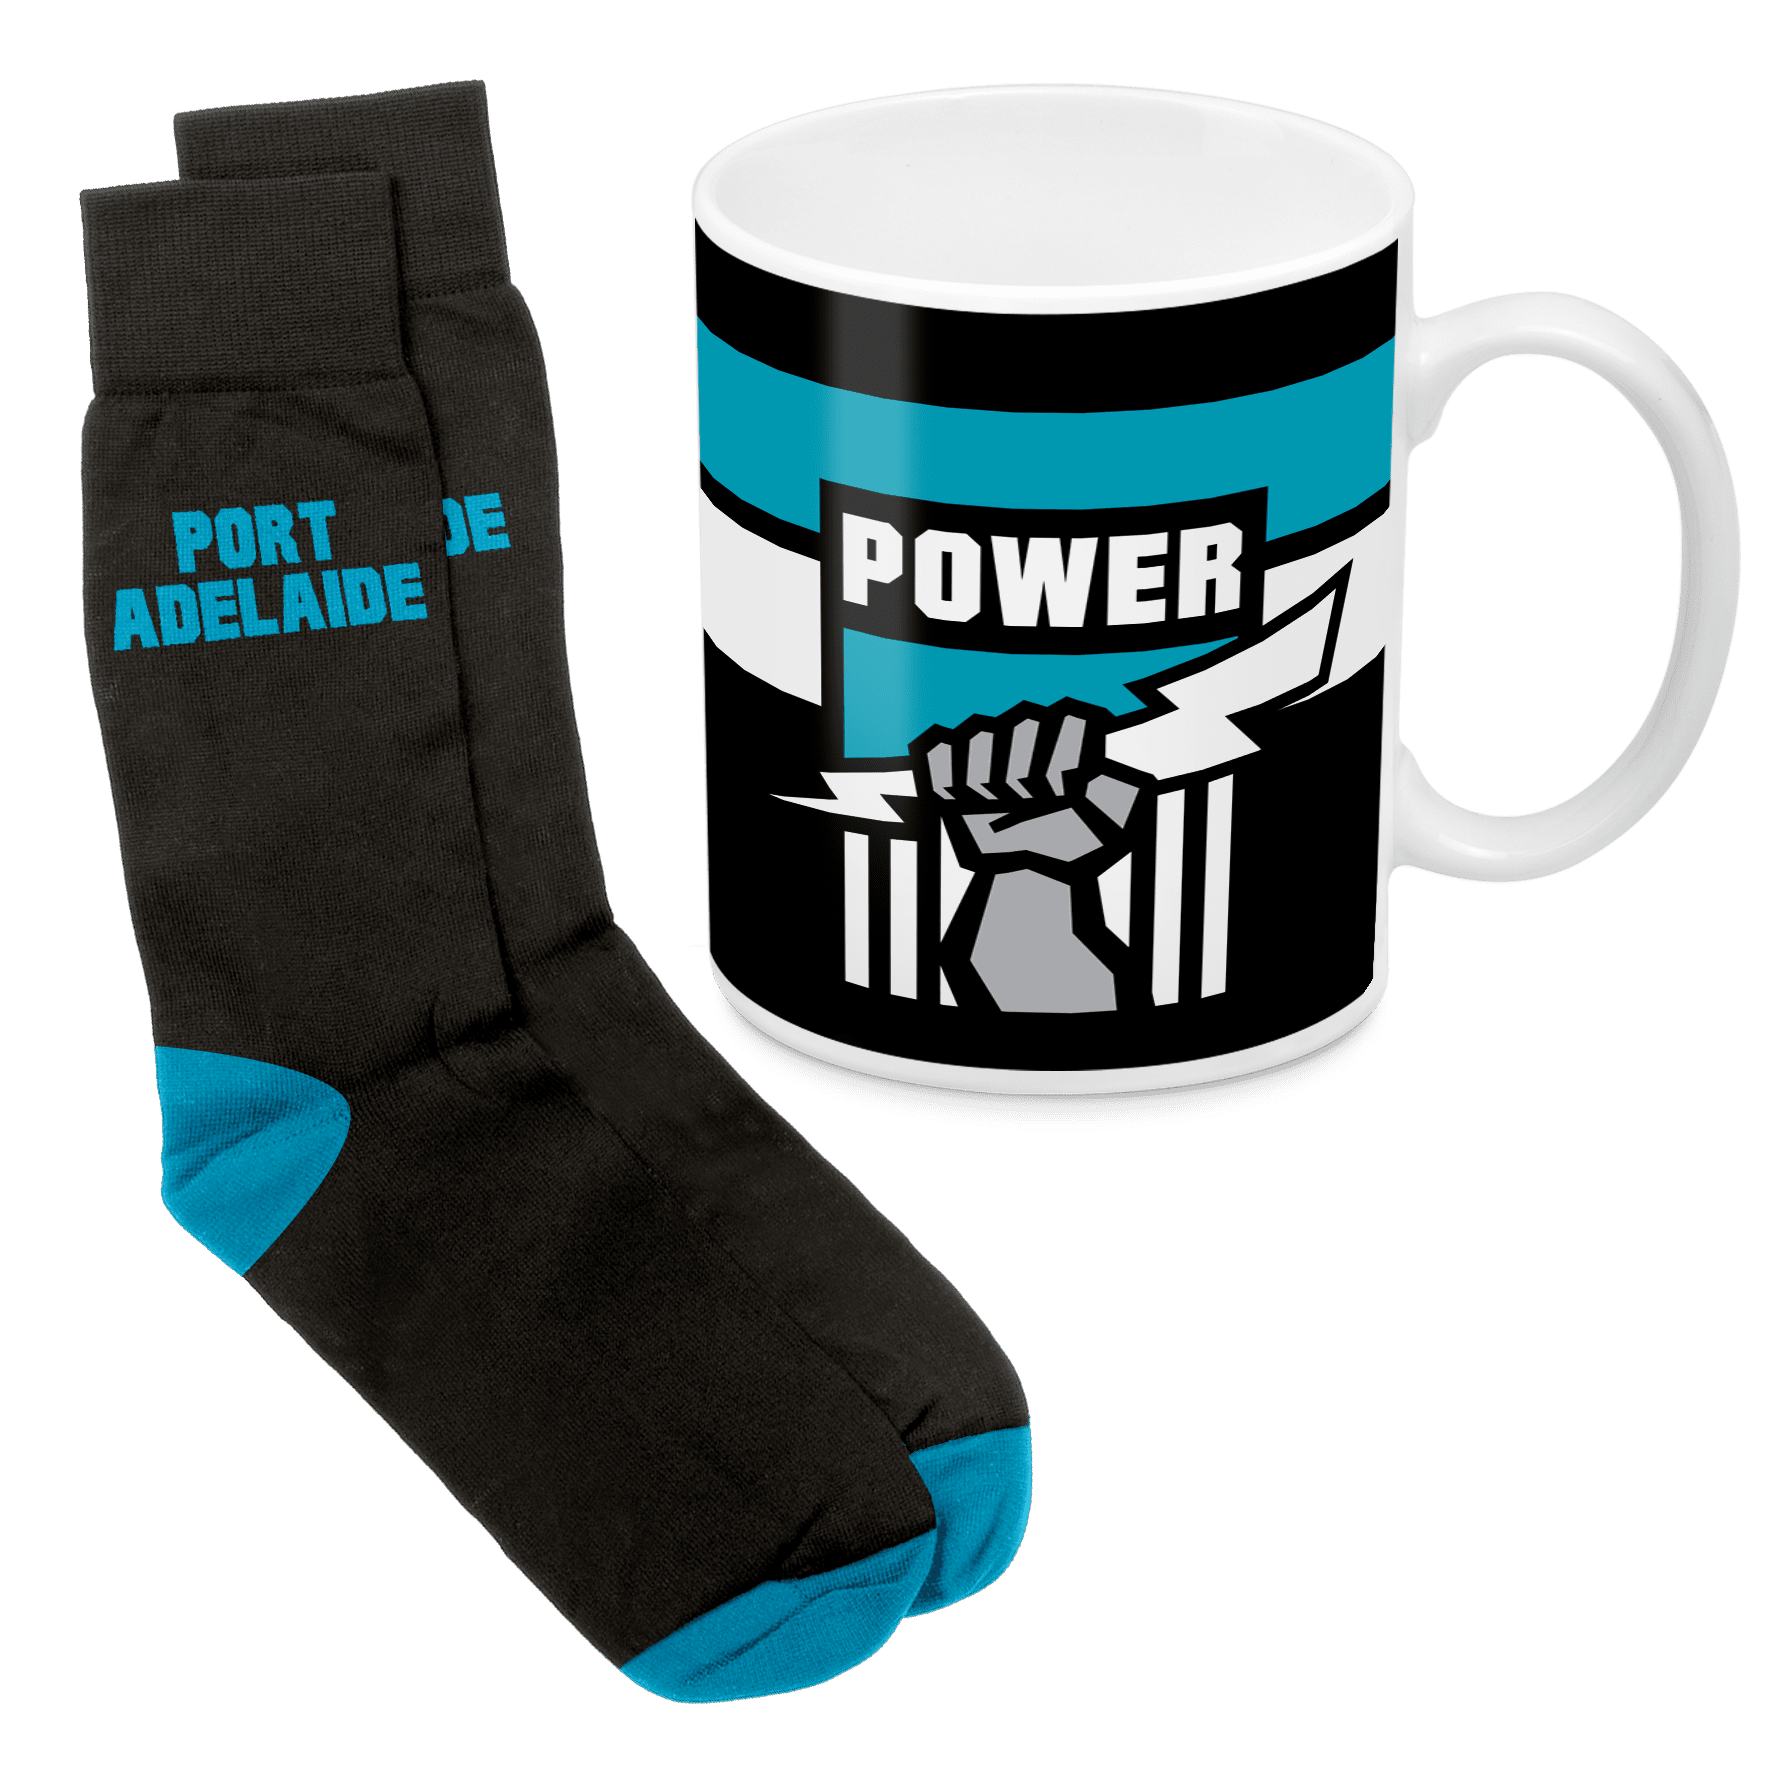 AFL Mug & Sock Gift Pack Port Adelaide